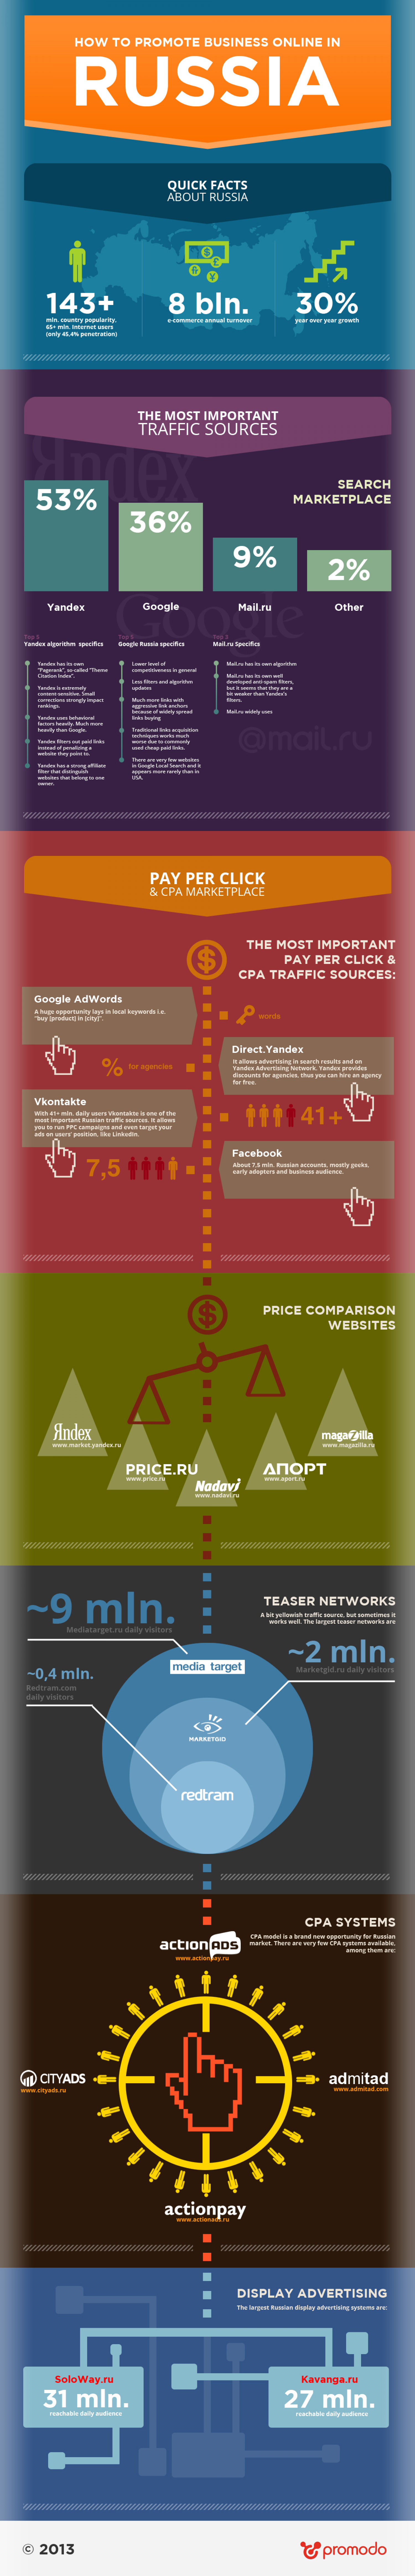 How to promote business online in Russia? Infographic